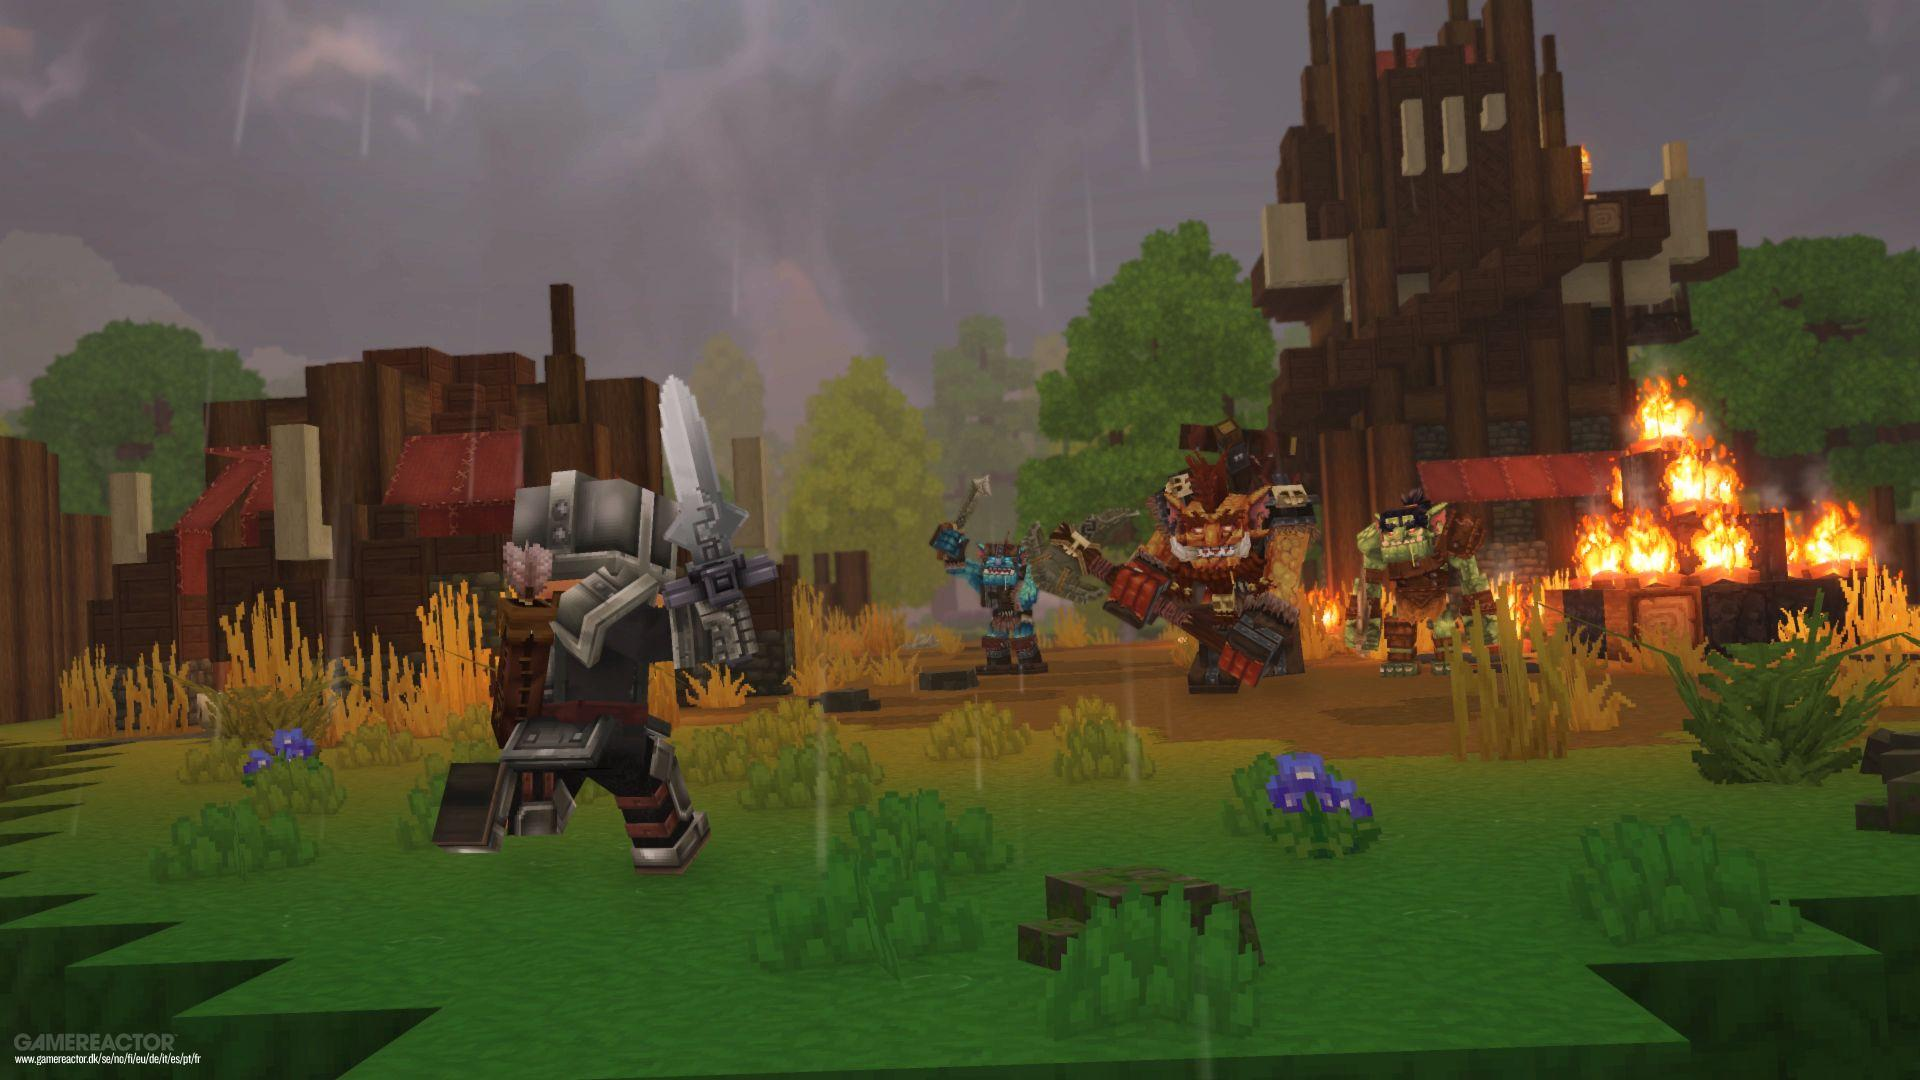 Pictures of Minecraft-inspired Hytale unveiled by Hypixel 6/11